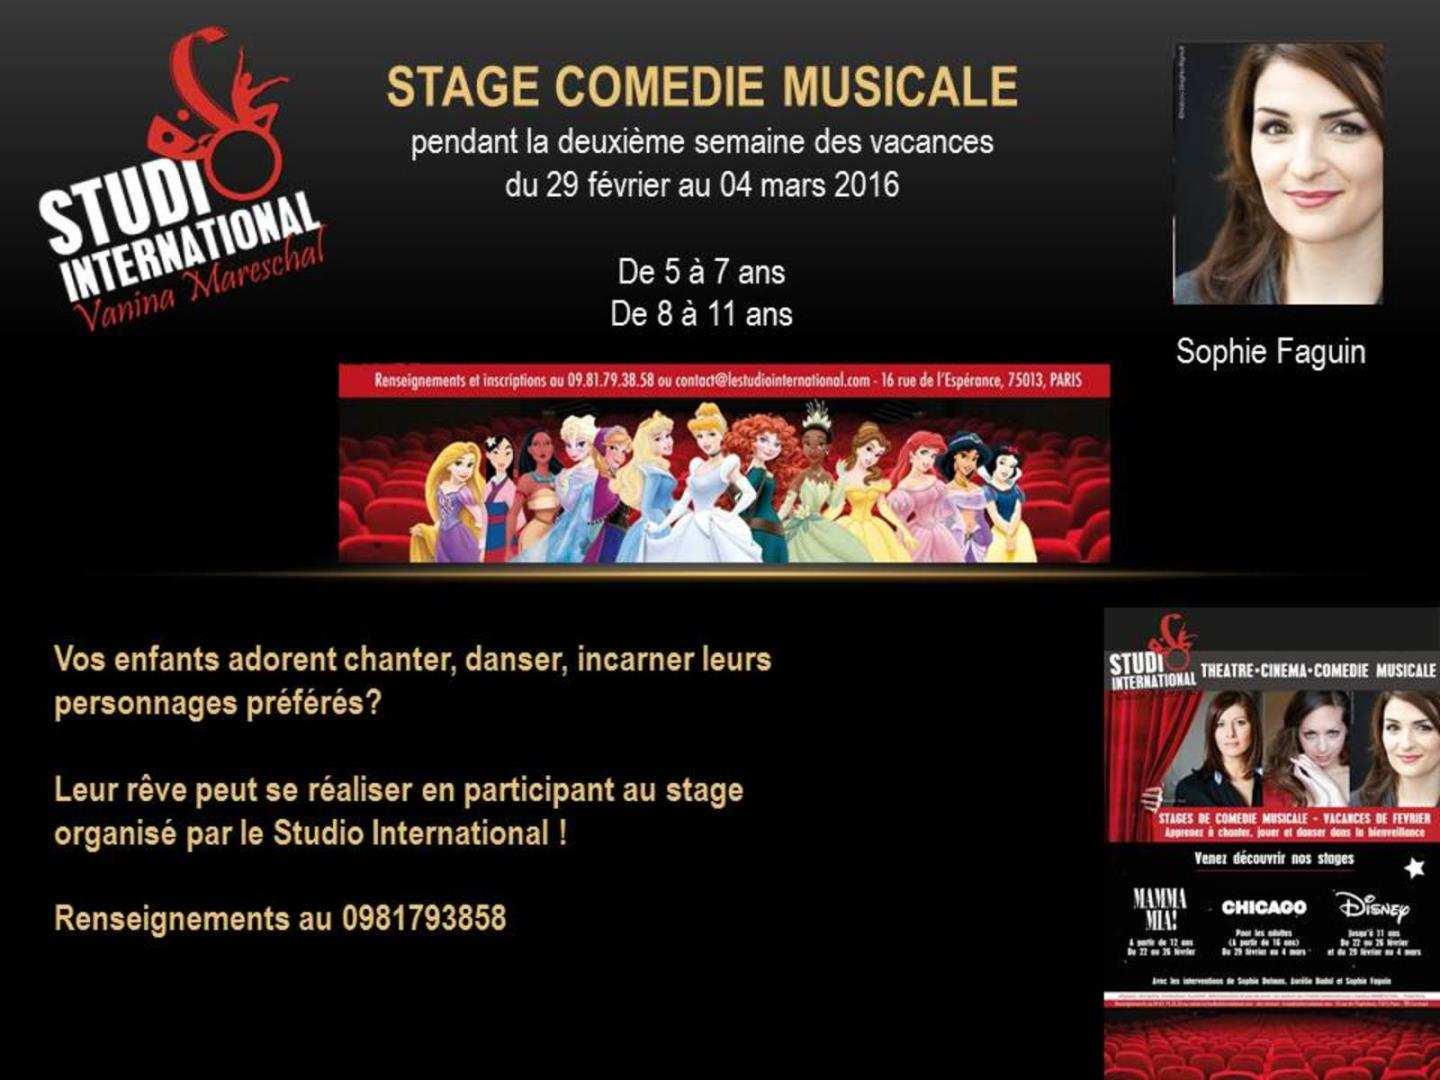 Stage comédie musicale pour enfants !! - STUDIO International Vanina Mareschal